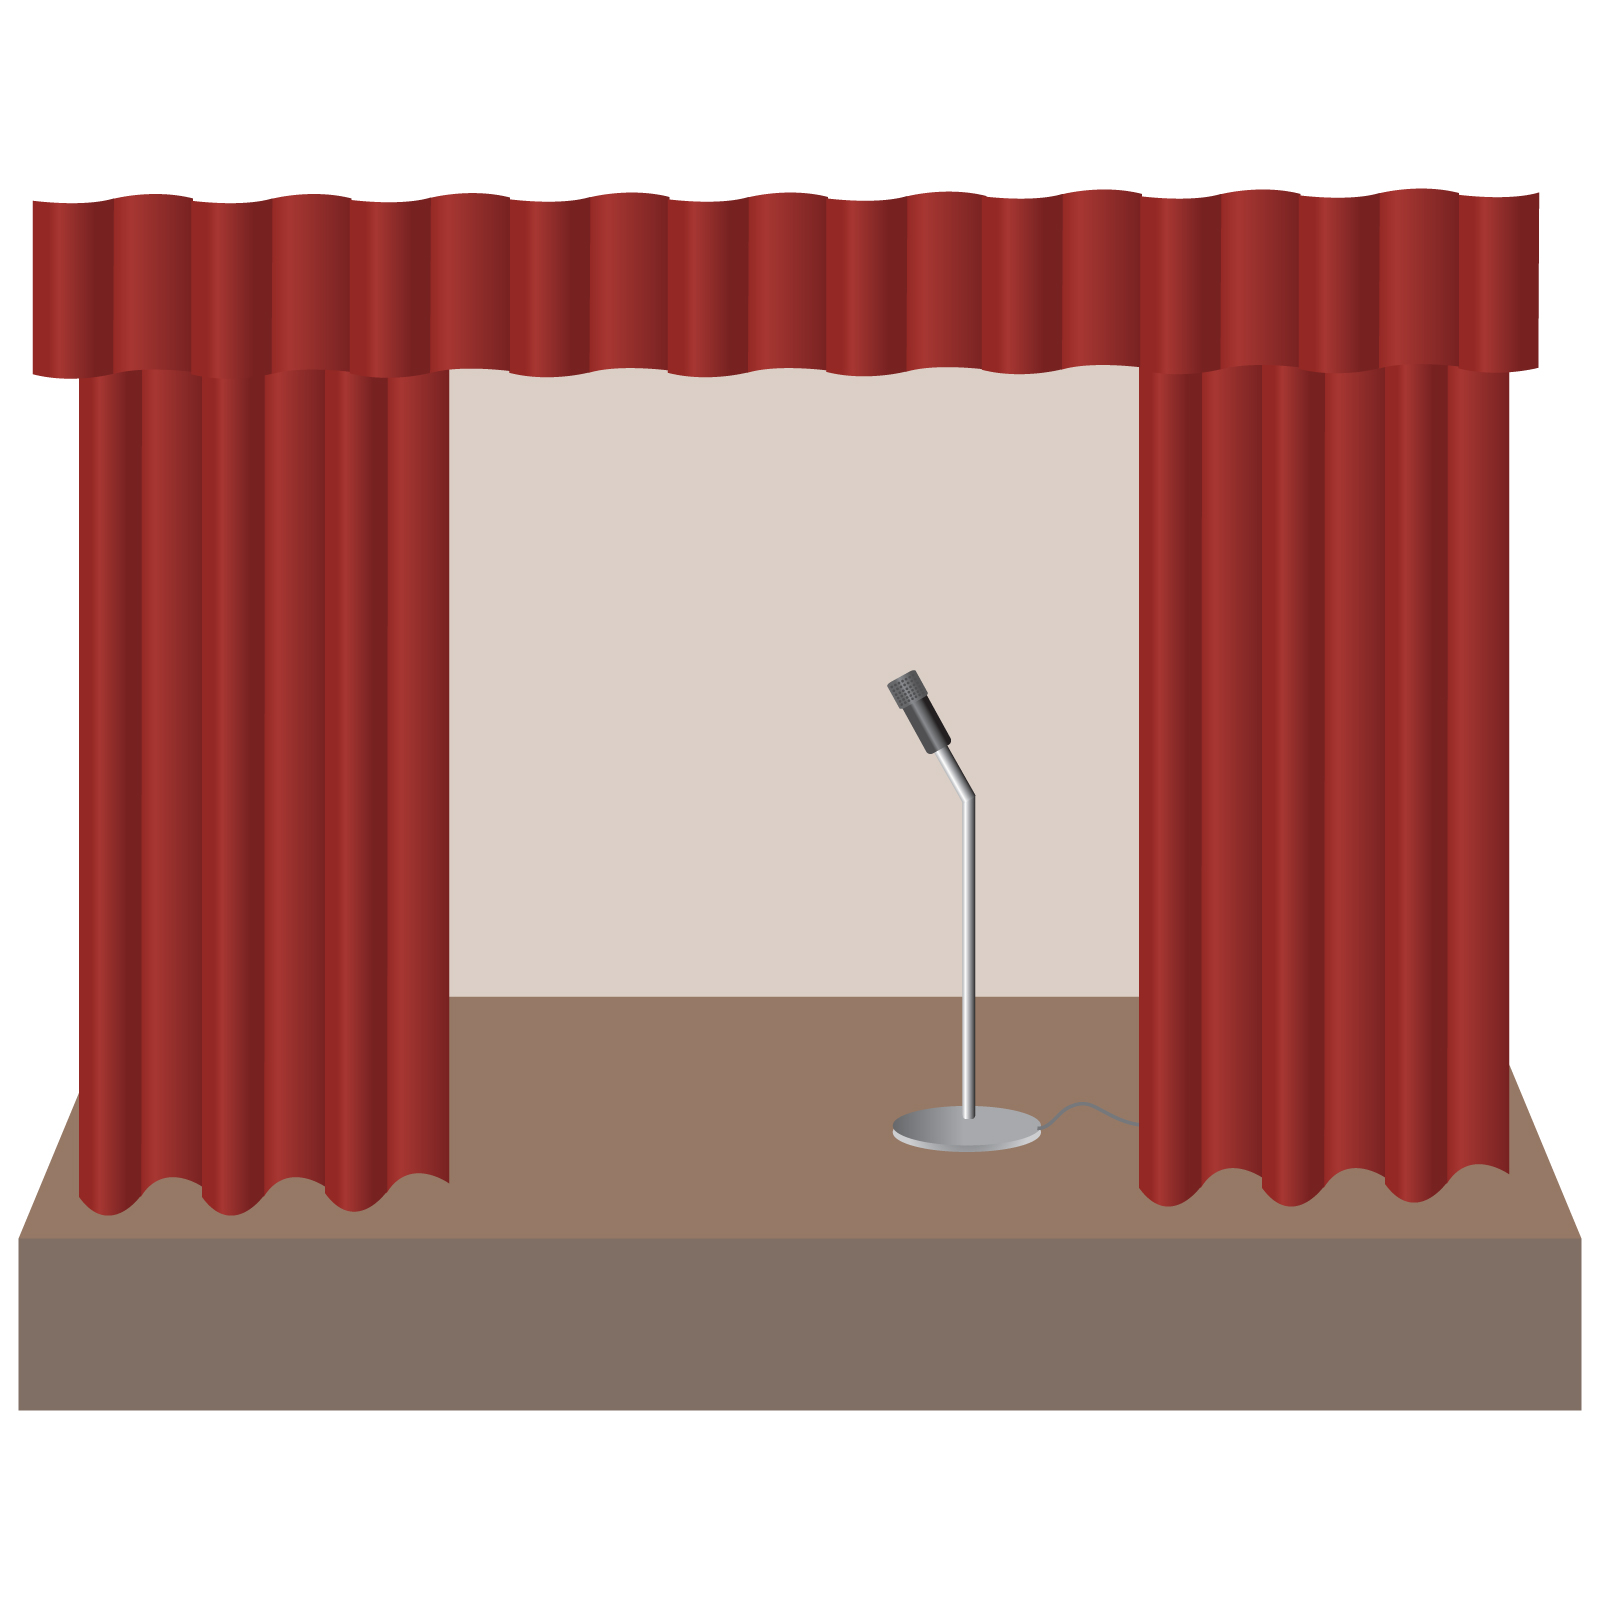 Free school cliparts download. Theatre clipart stage direction